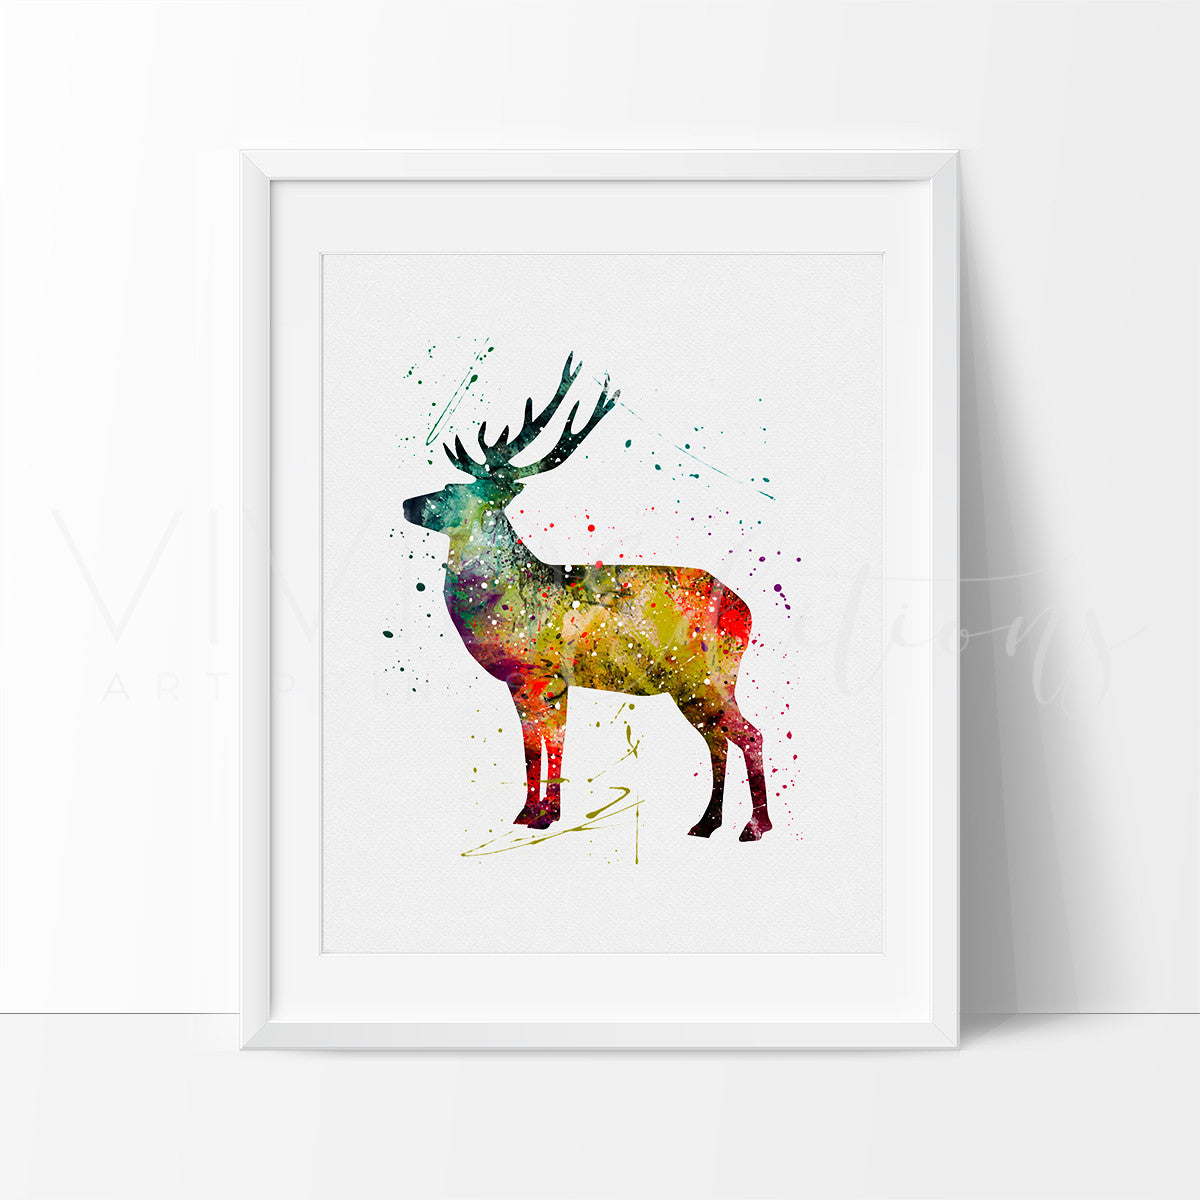 Deer Stag Woodland Watercolor Art Print, Baby Nursery Art Print Wall Decor,  Woodland Theme Vacation Home Art, Not Framed, No. 116